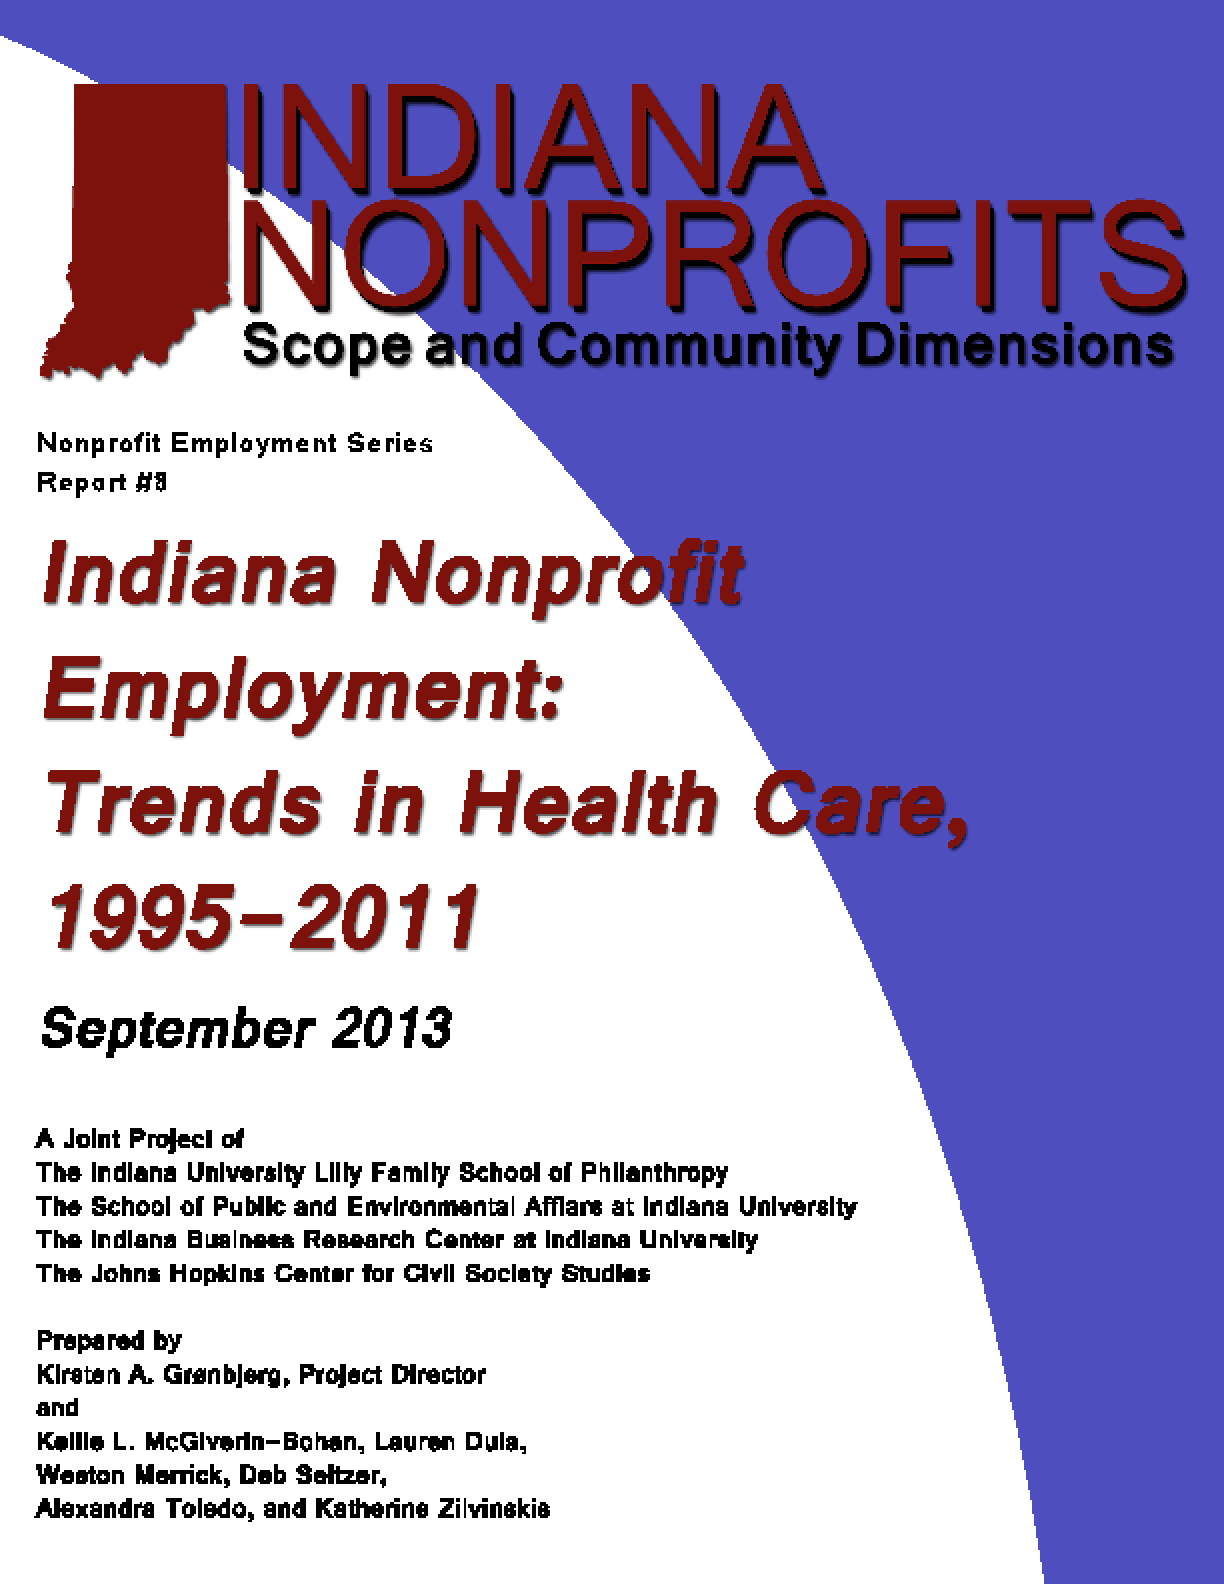 Indiana Nonprofit Employment: Trends in Healthcare 1995-2011